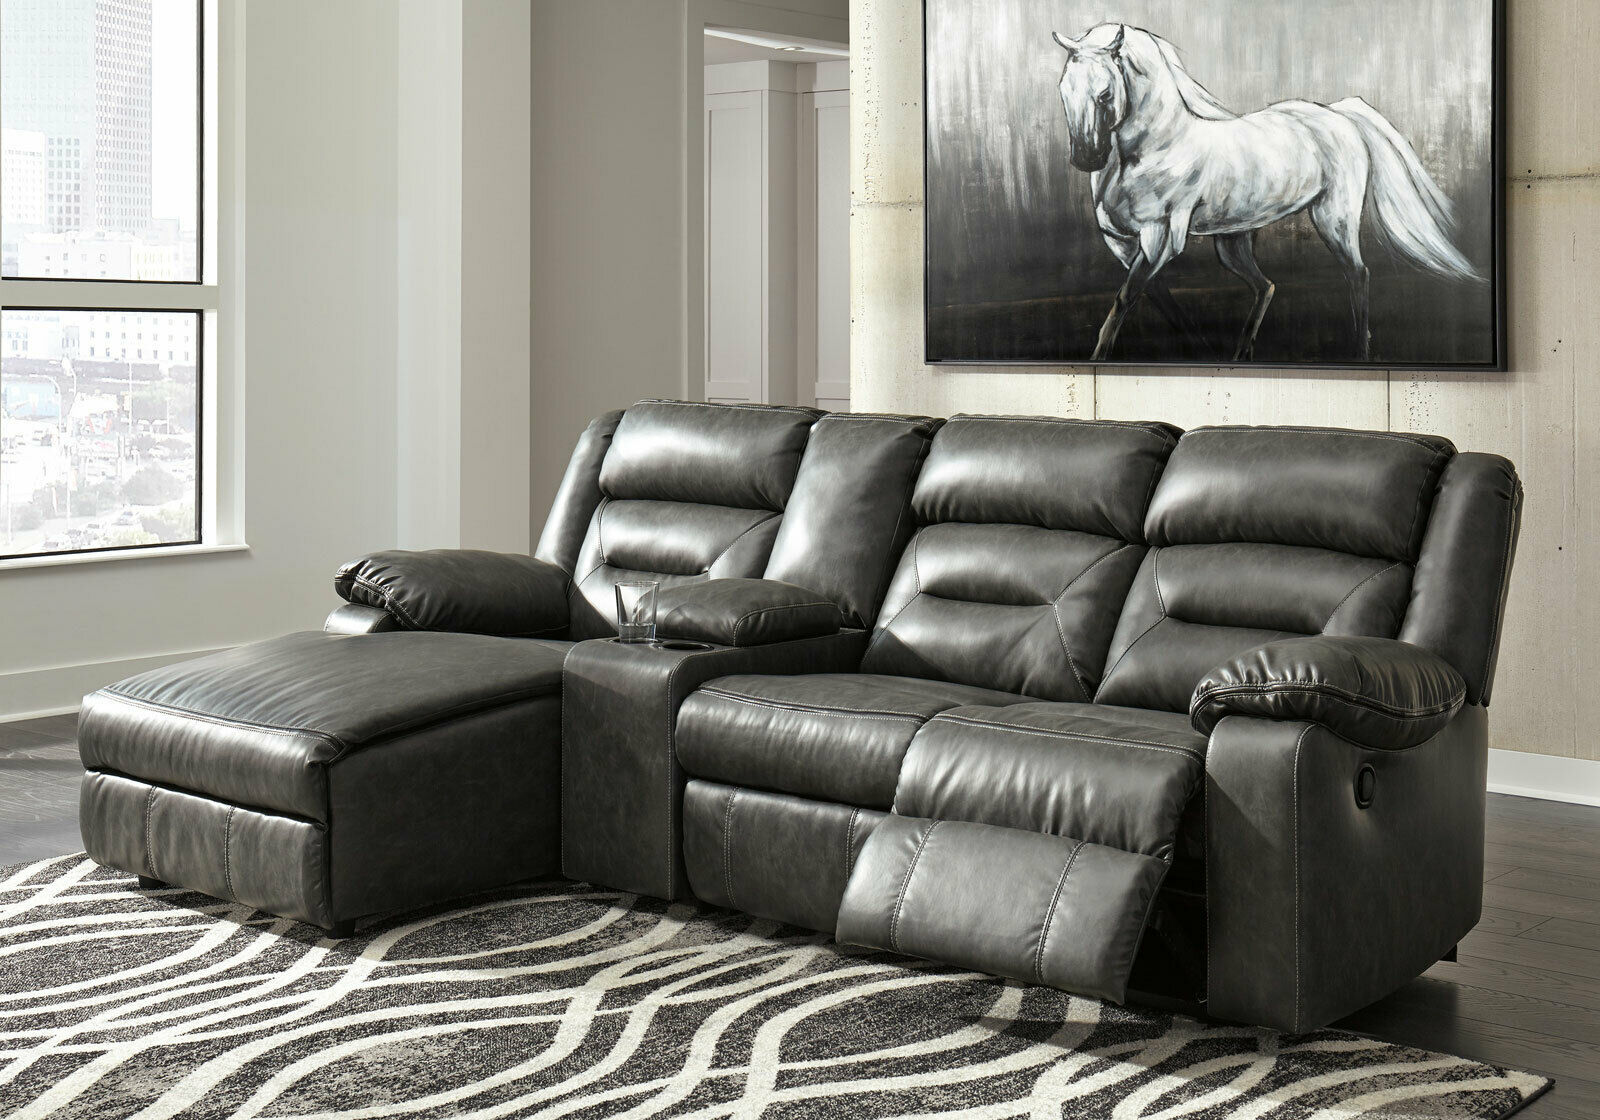 4 piece Sectional Gray Faux Leather Reclining Sofa Chaise ...